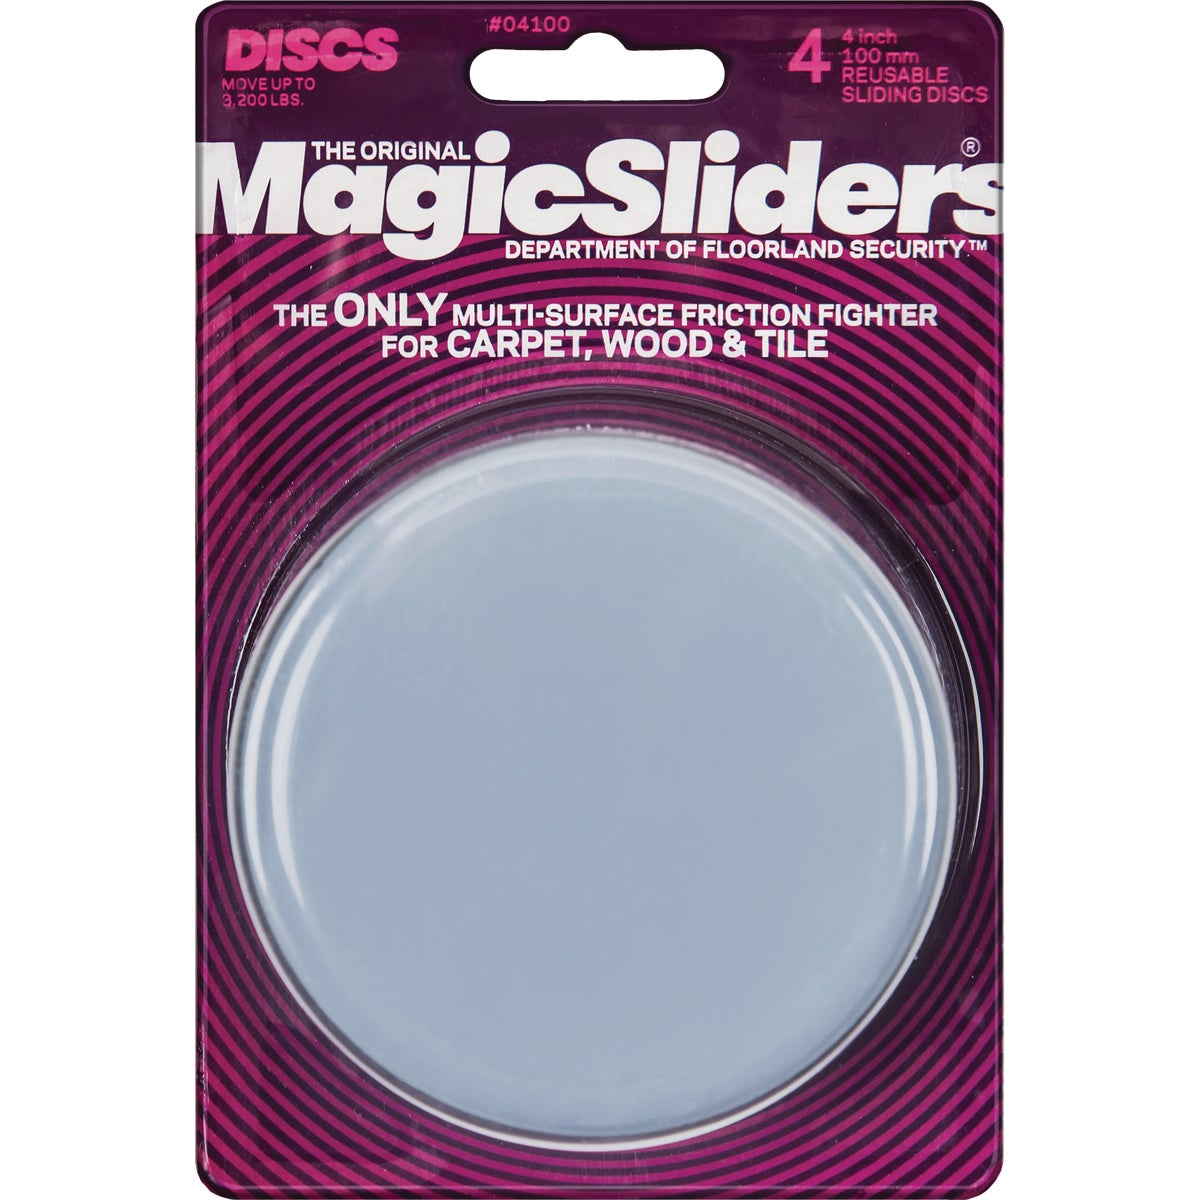 "4"" ROUND MAGIC SLIDER - 04100 by Magic Sliders"